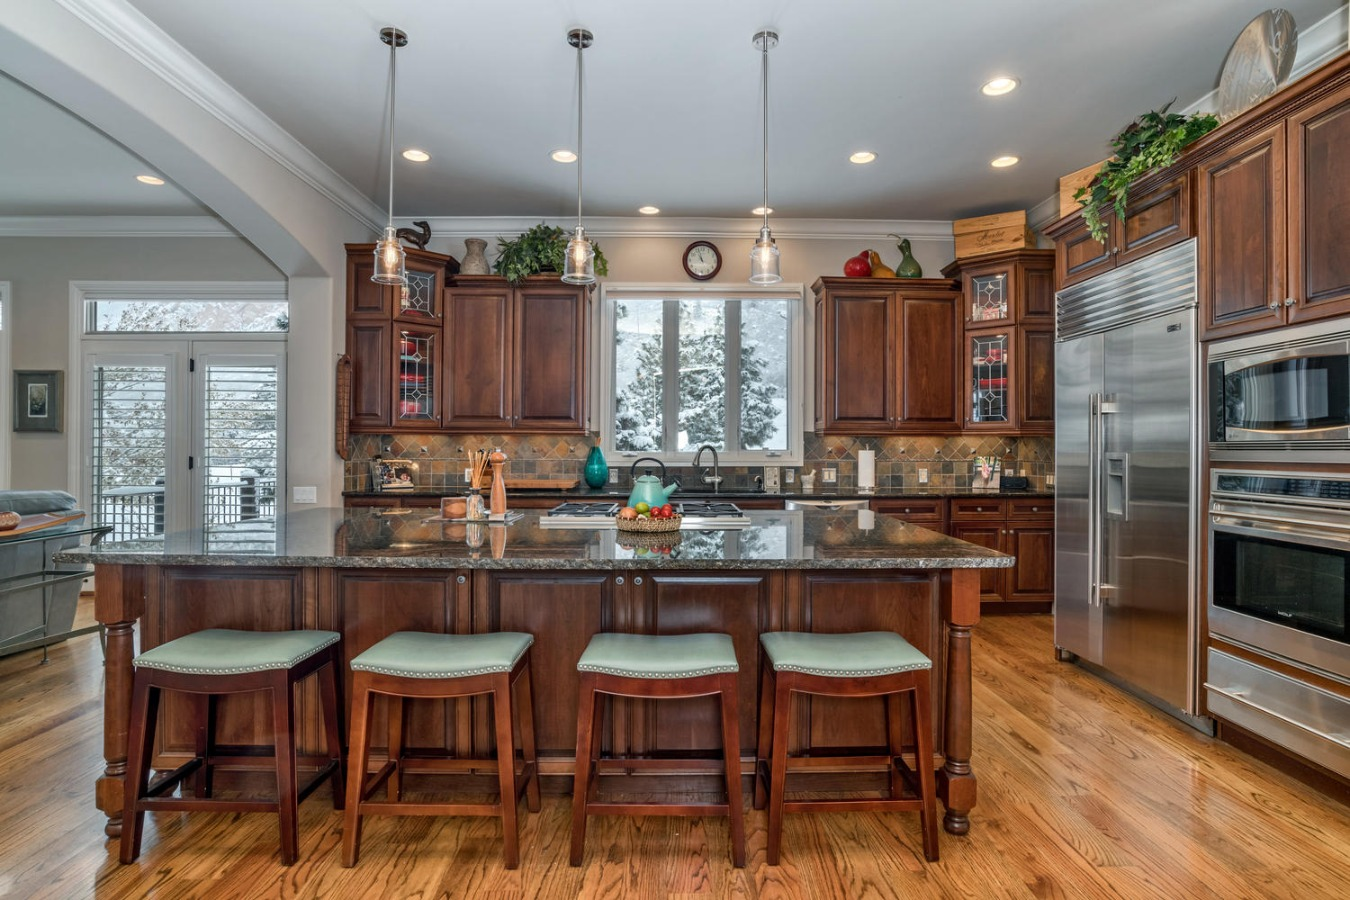 Spacious Counter Seating at Kitchen Island